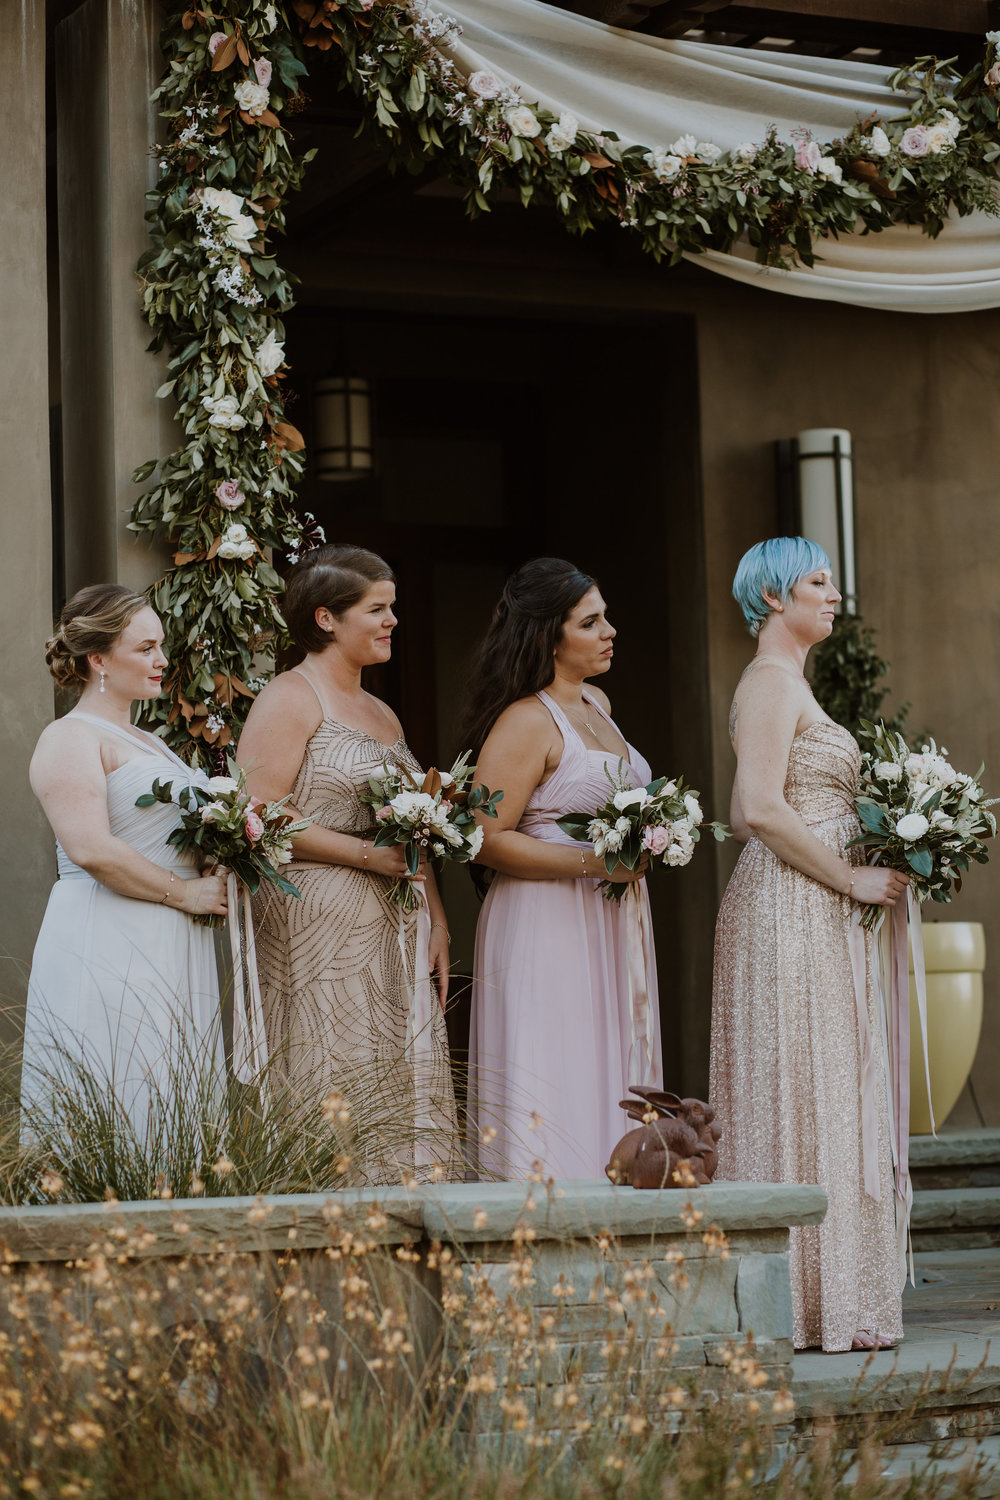 Full floral garland ceremony and romantic bridal flowers by Venn Floral, photographed by Gretchen Gause Photography.